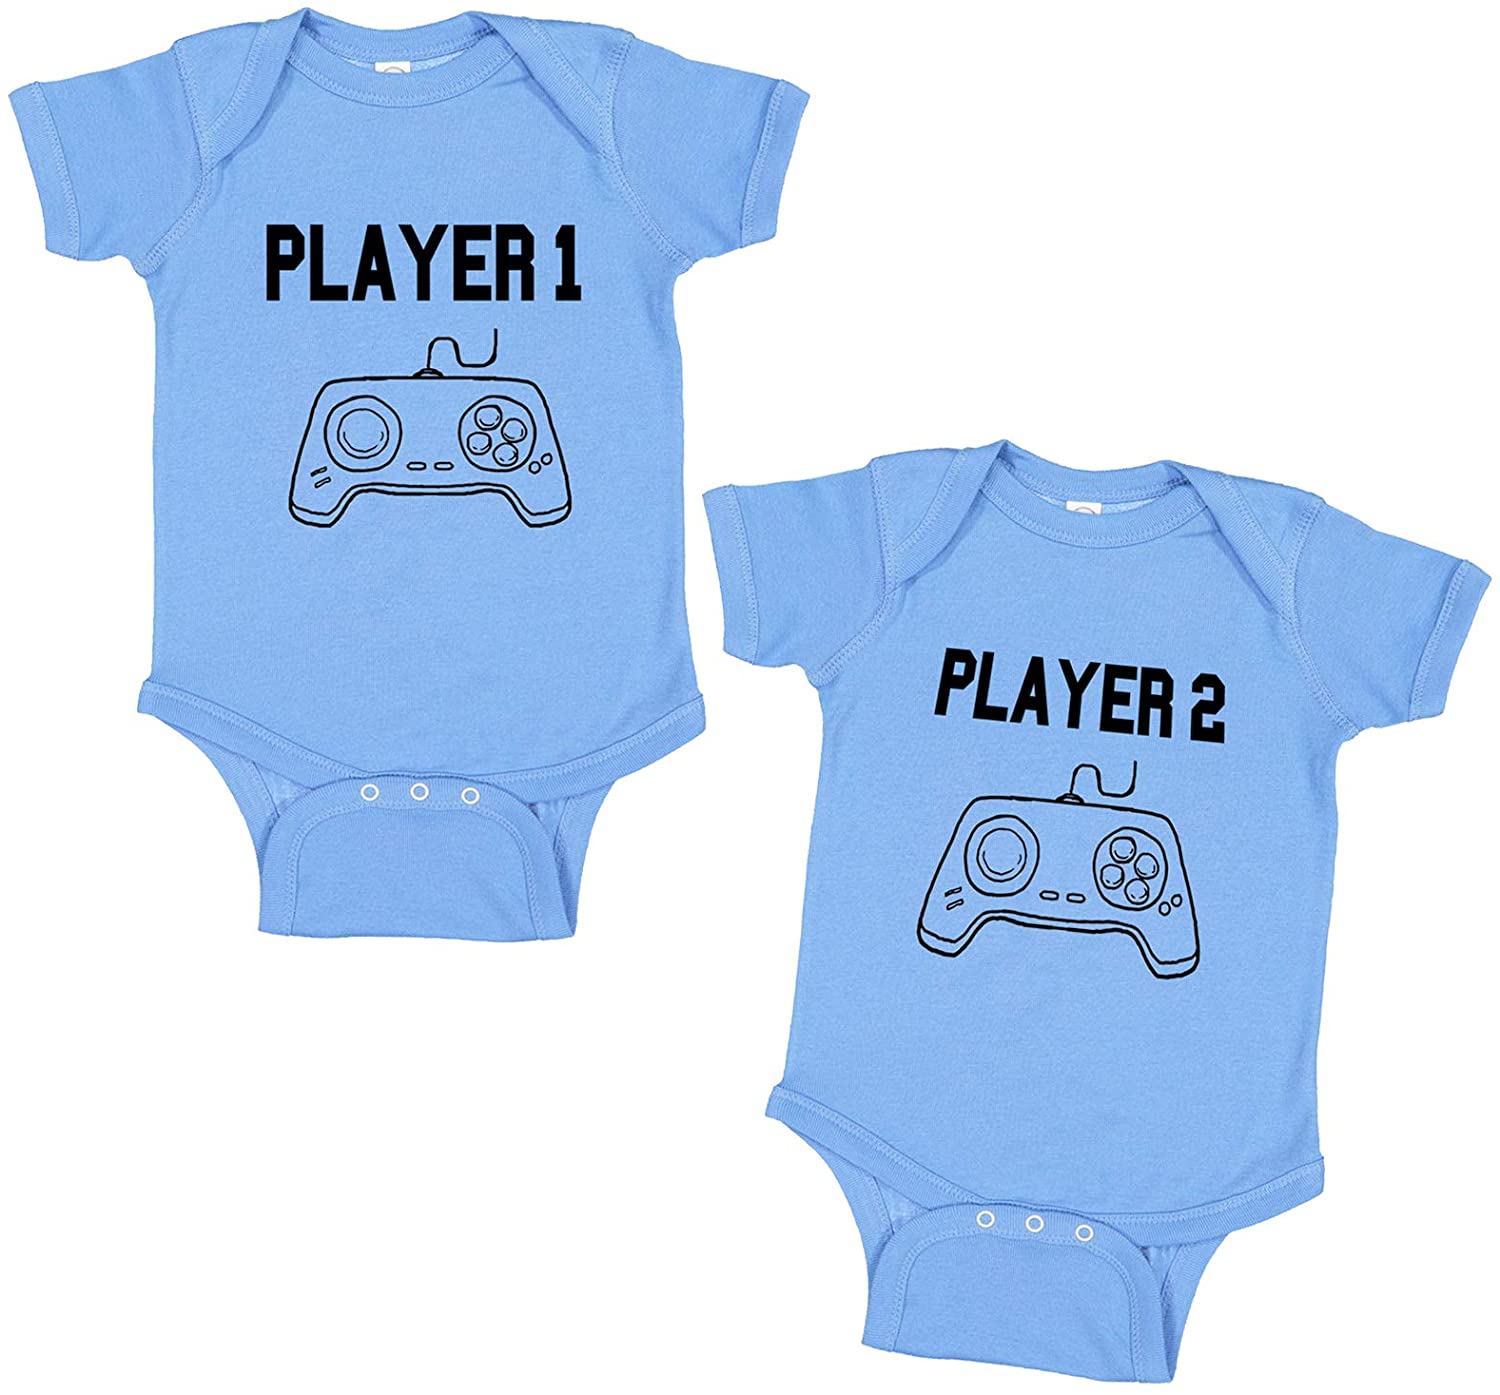 FunnyThreadz Baby Boy Girl Newborn Video Gaming Twin Set of 2 Onesies Player 1 Player 2 Shirts Tees Two